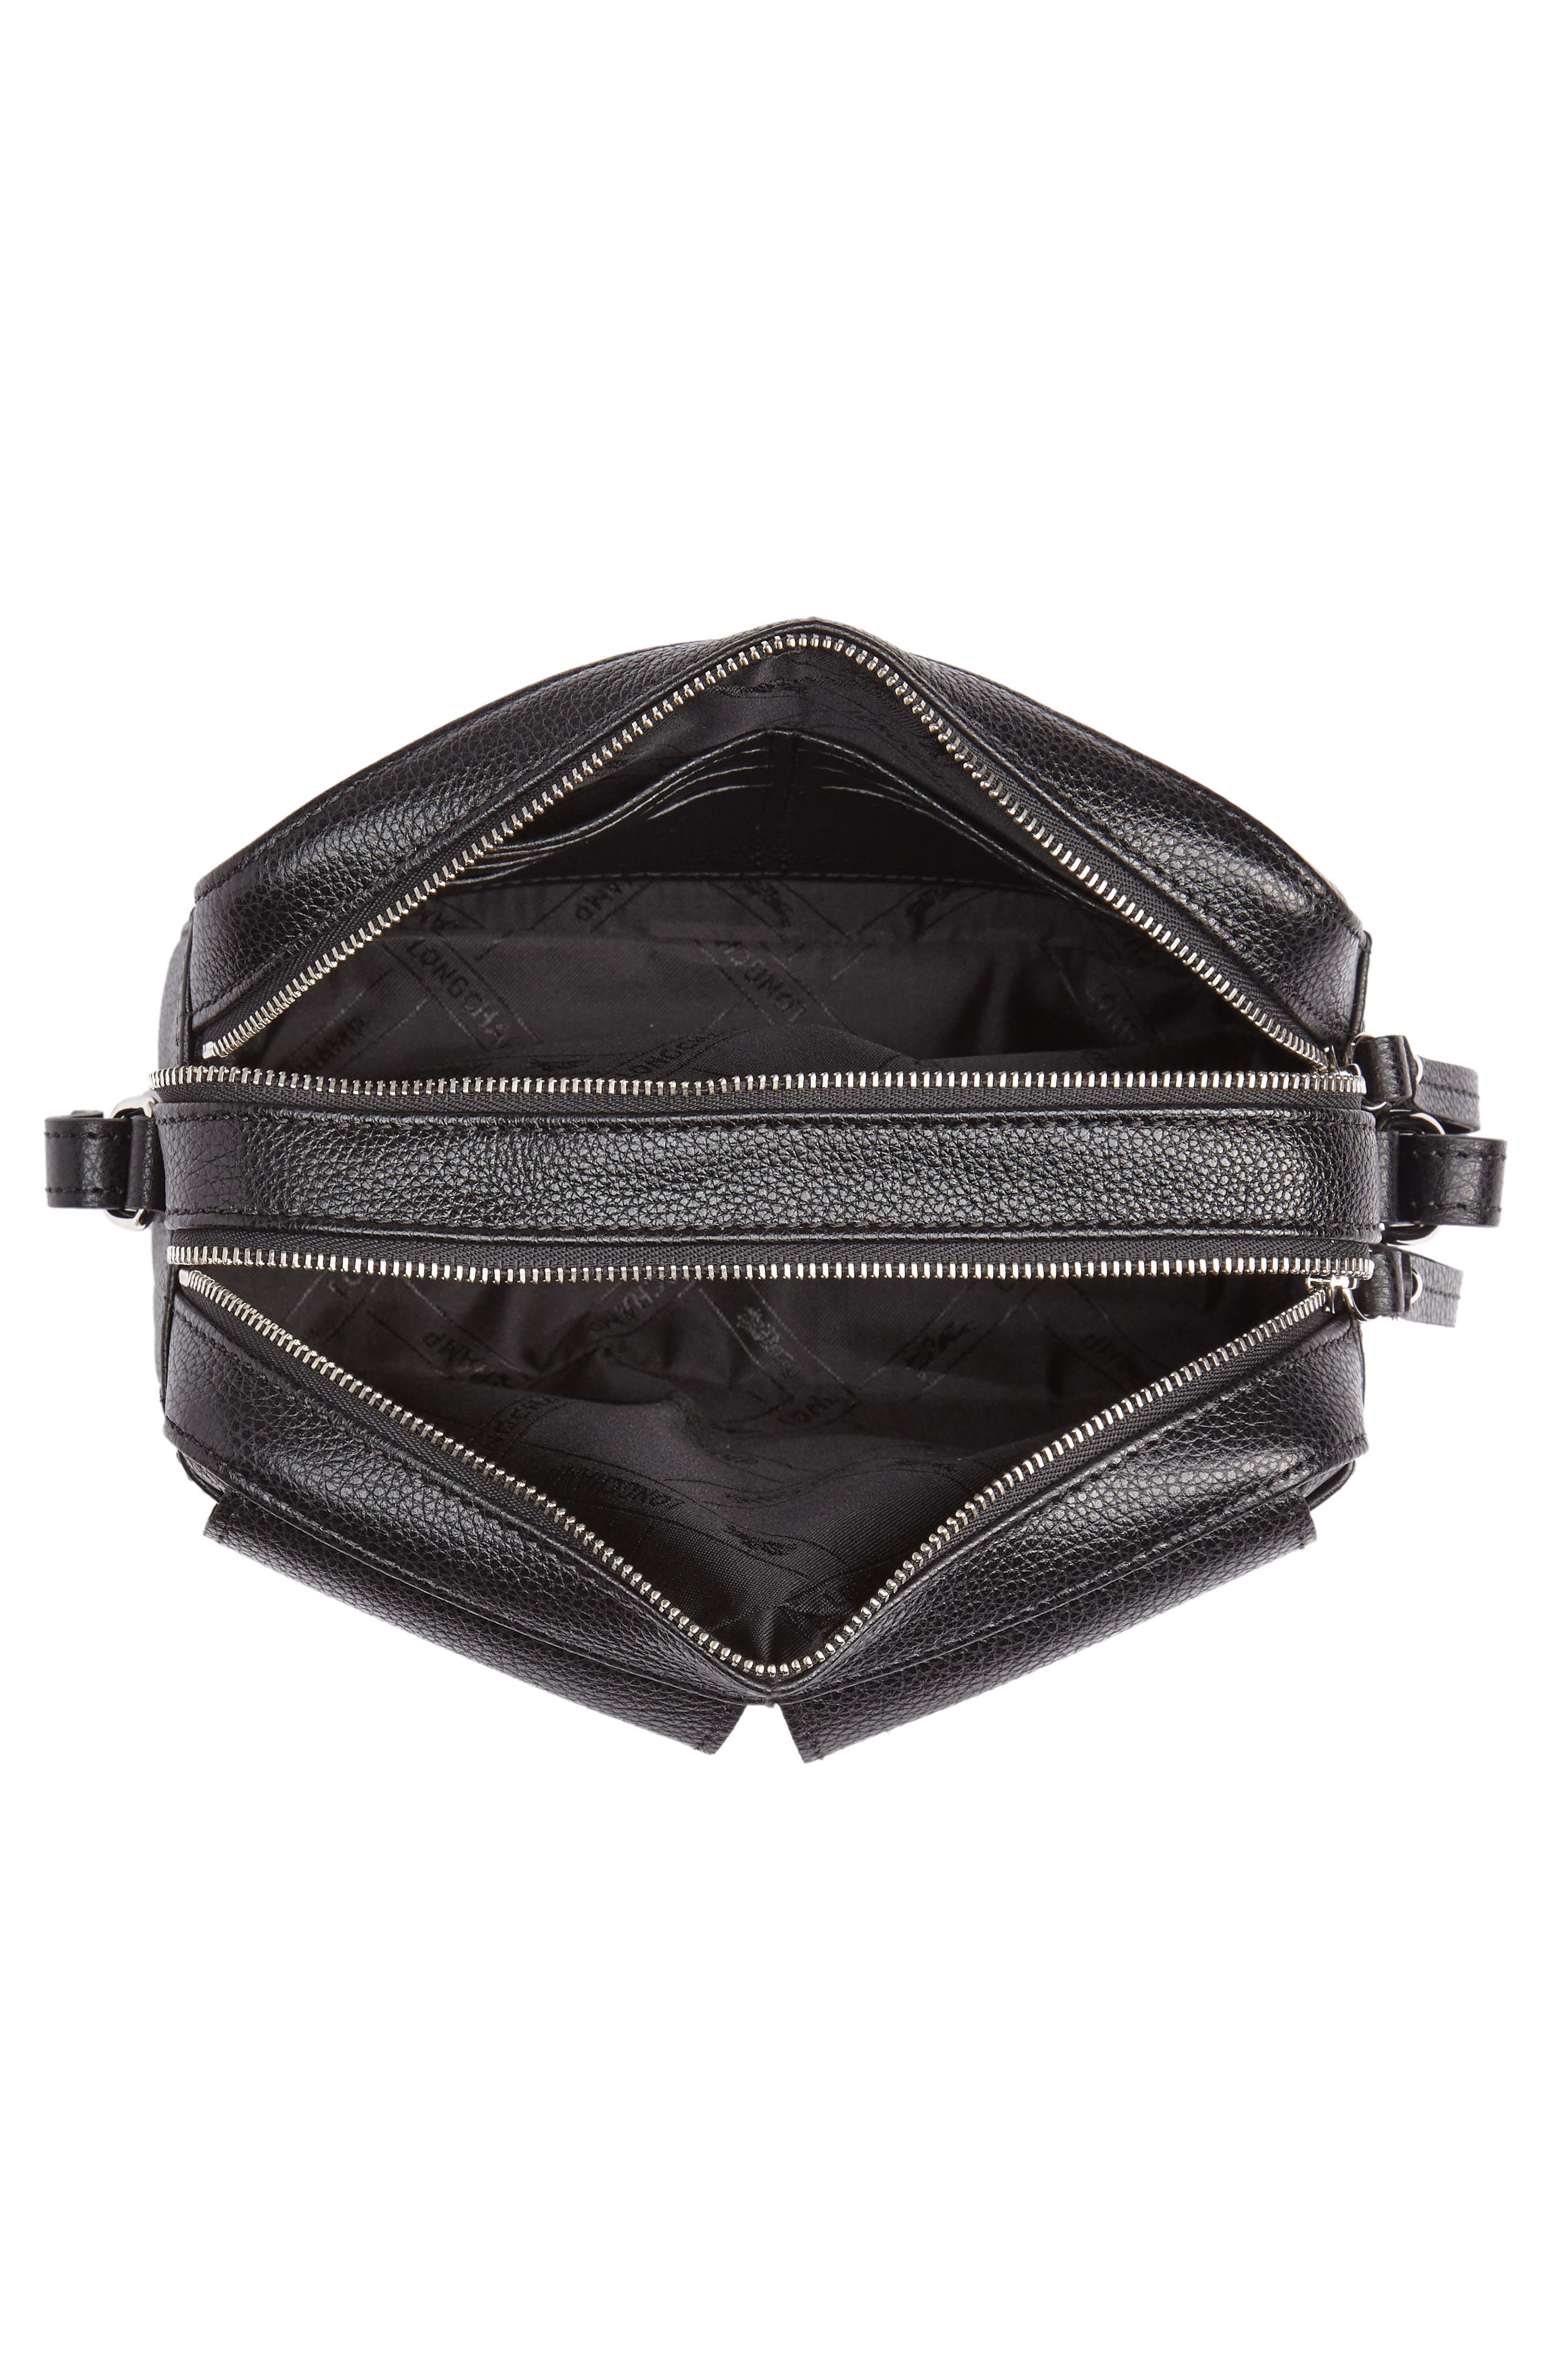 Le Foulonné Leather Camera Bag,                             Alternate thumbnail 4, color,                             BLACK